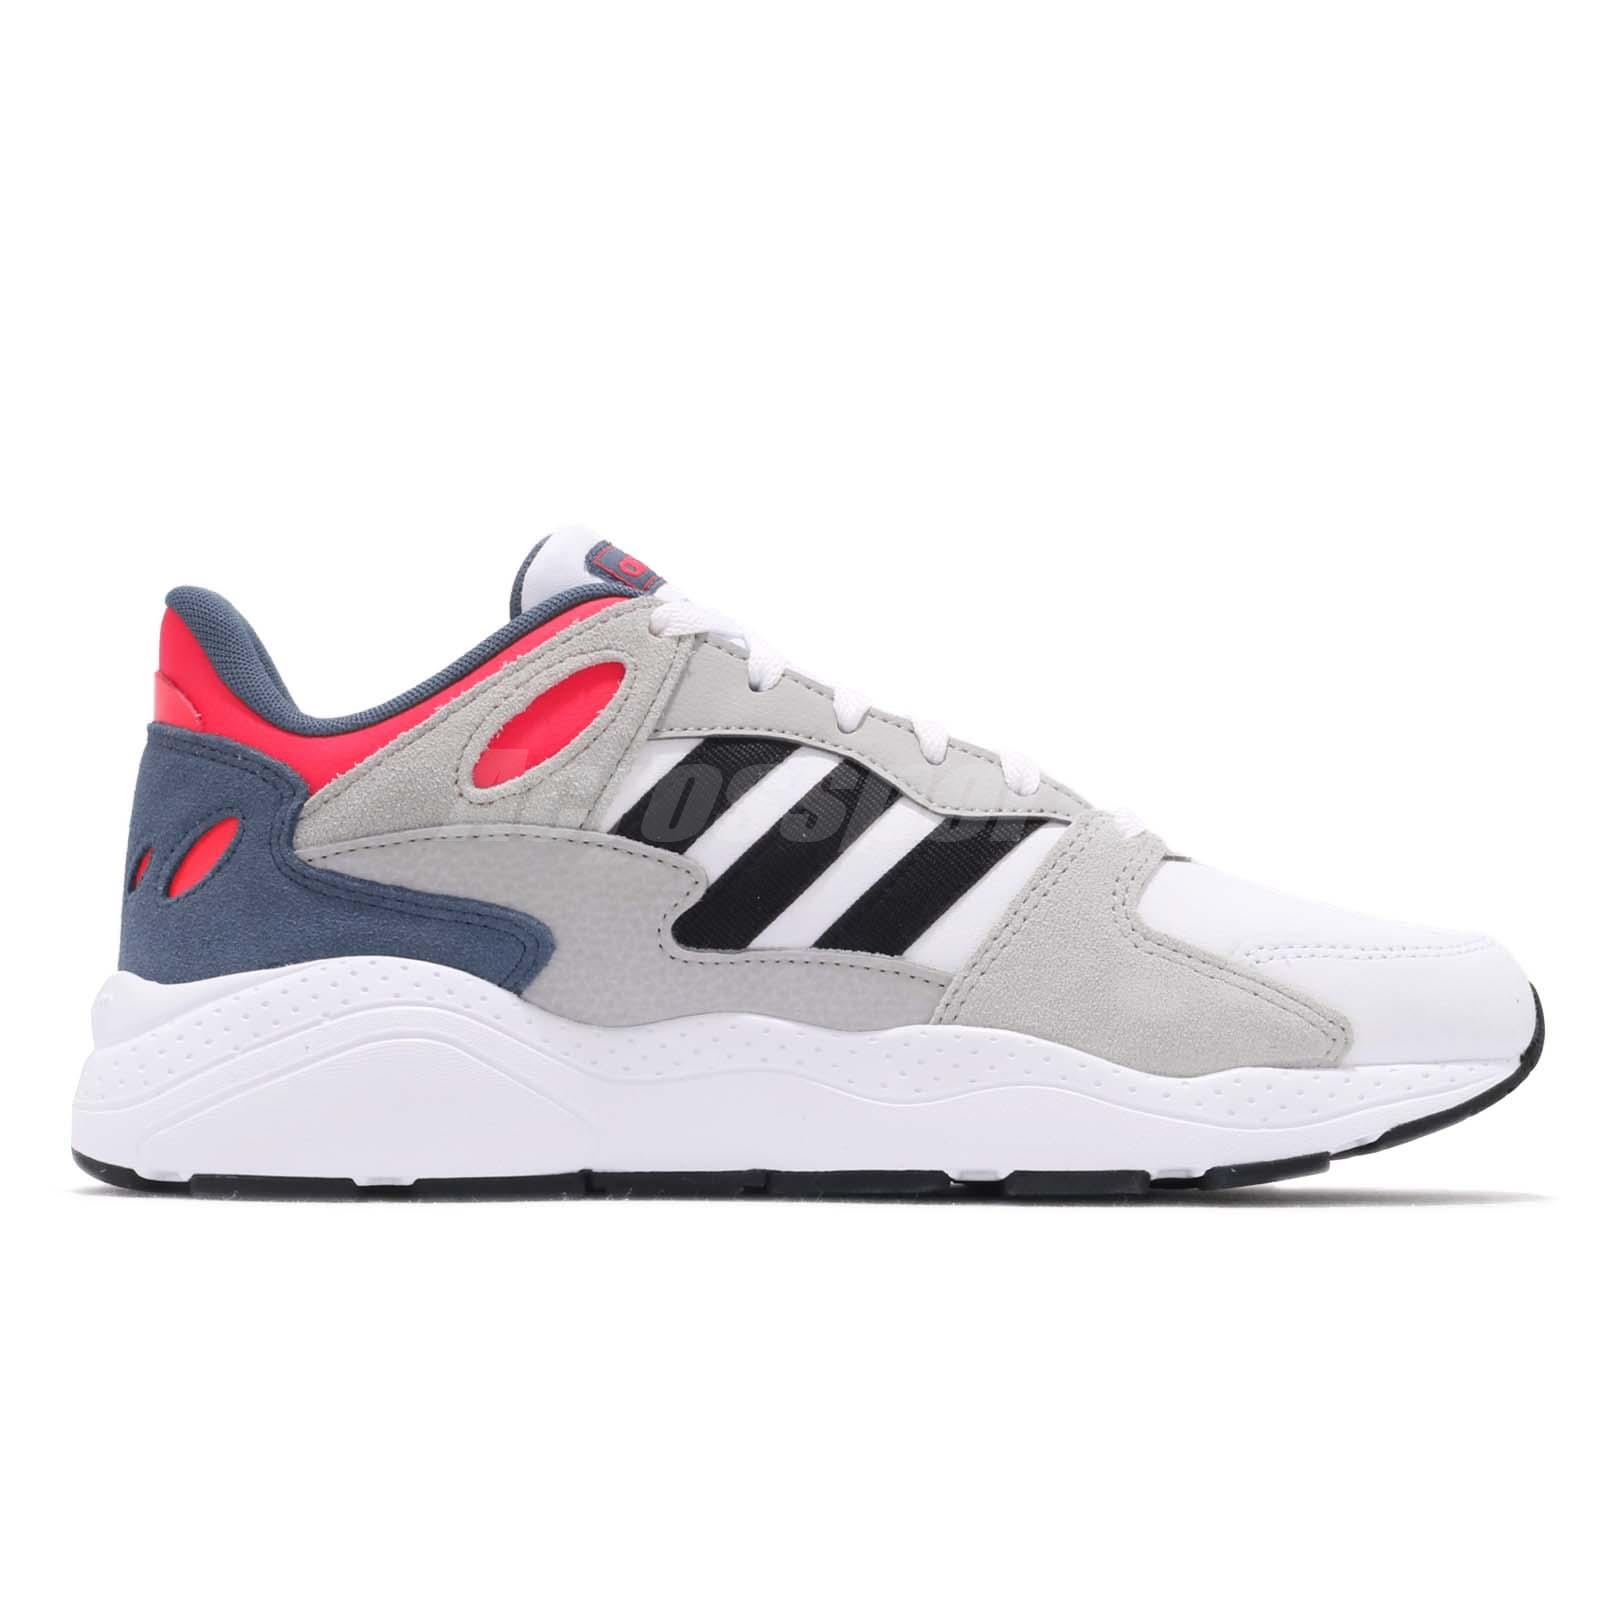 0bec9bbd33b adidas Chaos White Black Solar Red Men Running Casual Shoes Sneakers ...